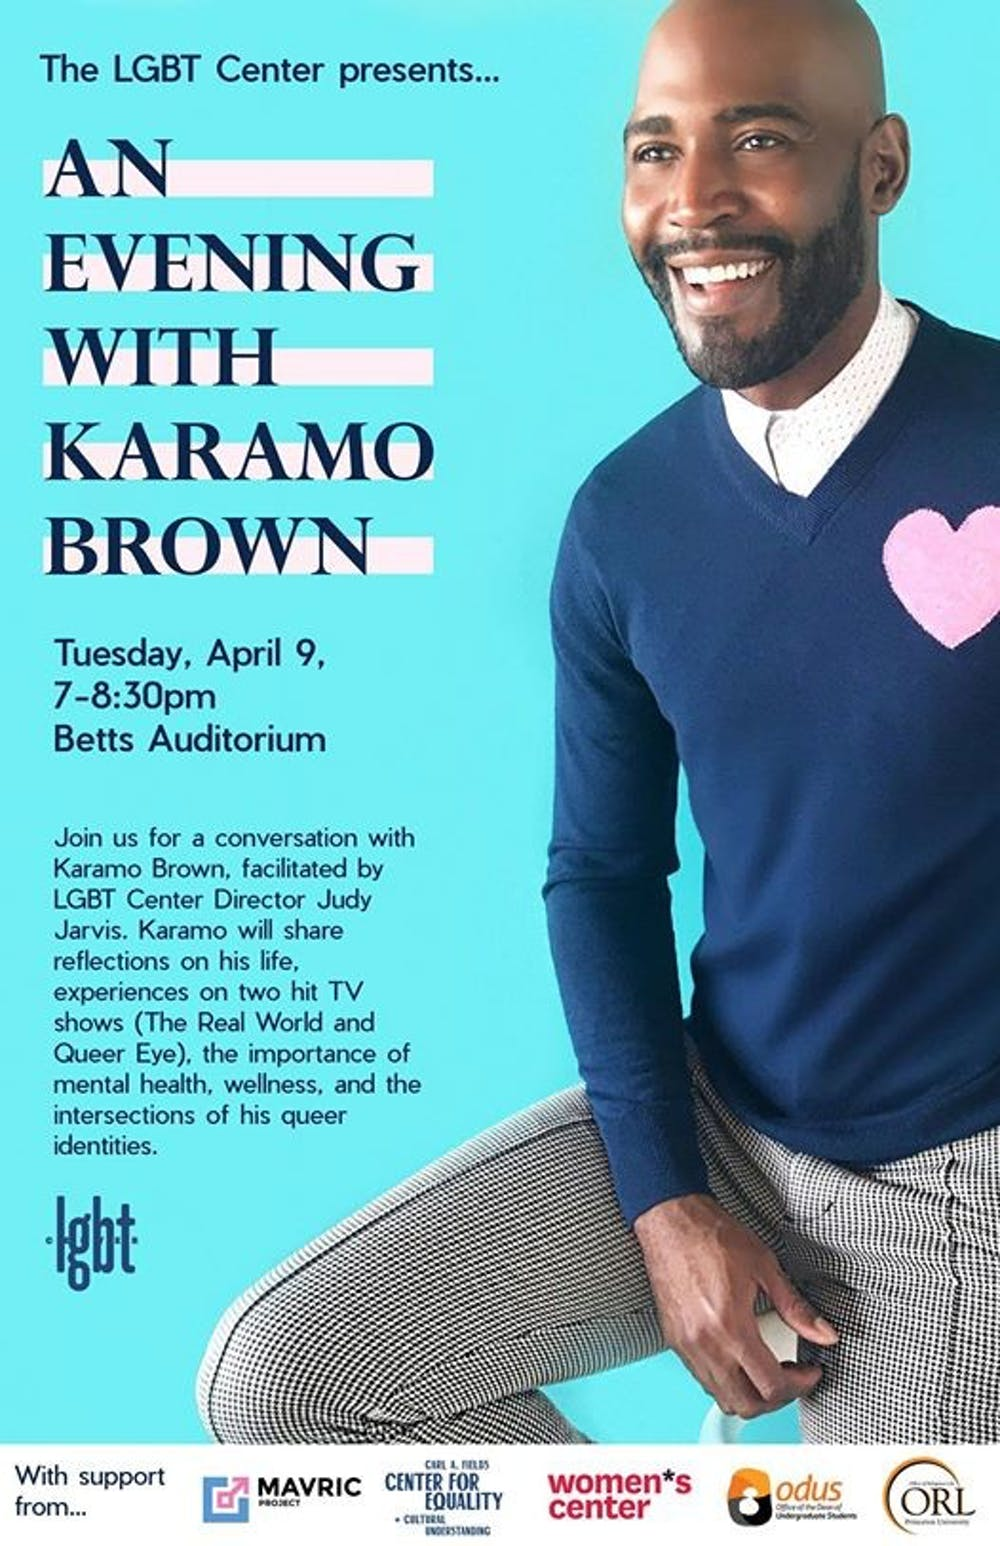 Brown delivered a talk to a full house, and additional audience members listened from outside the open windows. Courtesy of the LGBT Center.